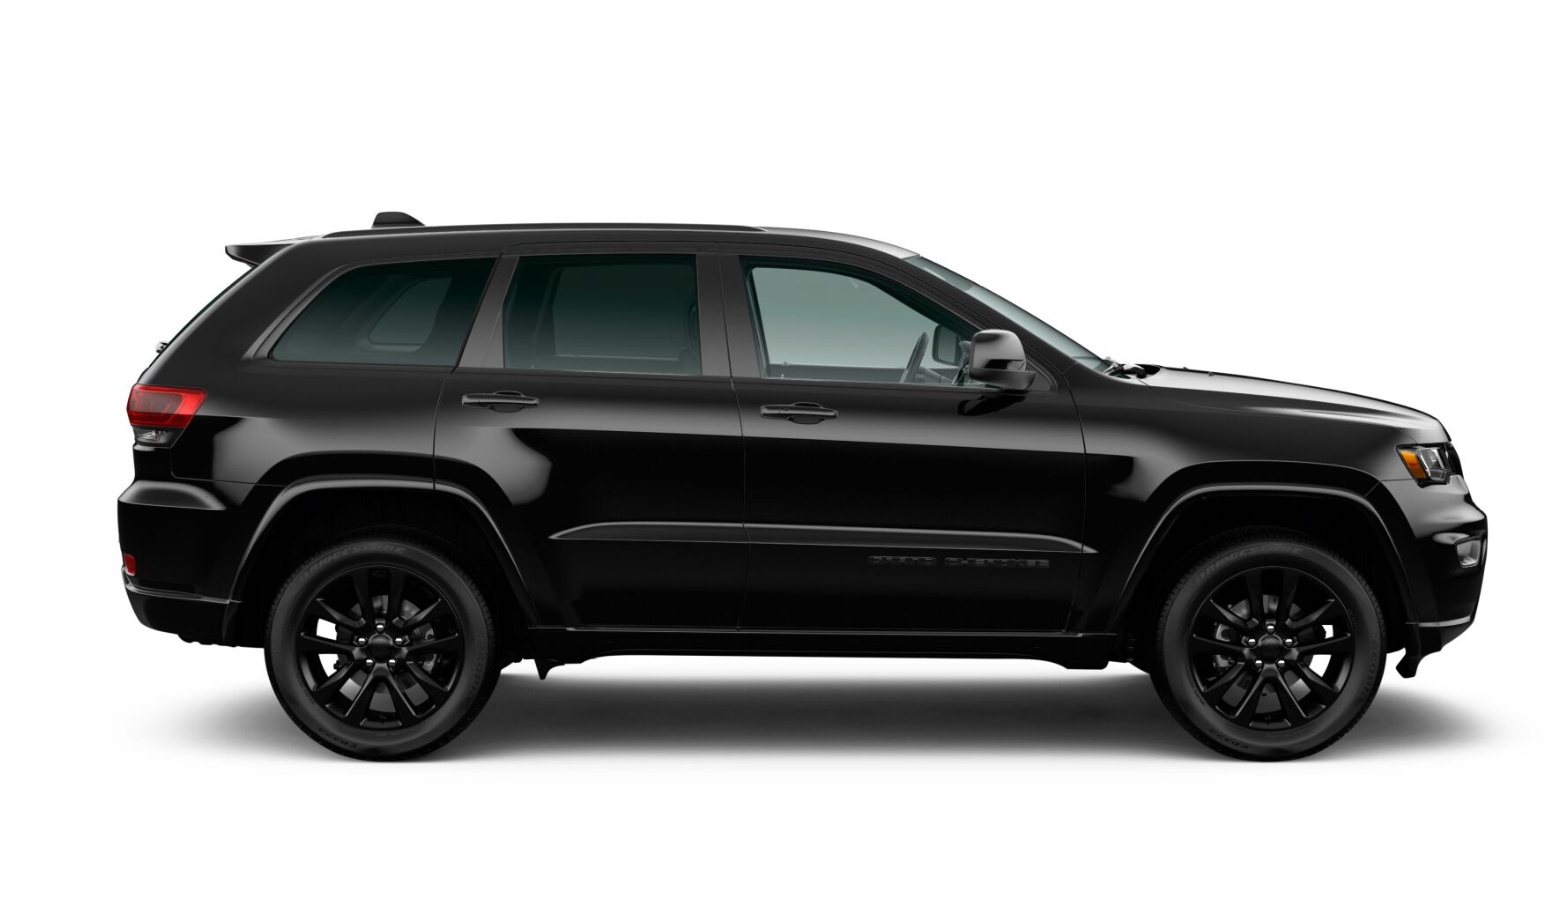 2020 Jeep Grand Cherokee Altitude Side View Black Exterior